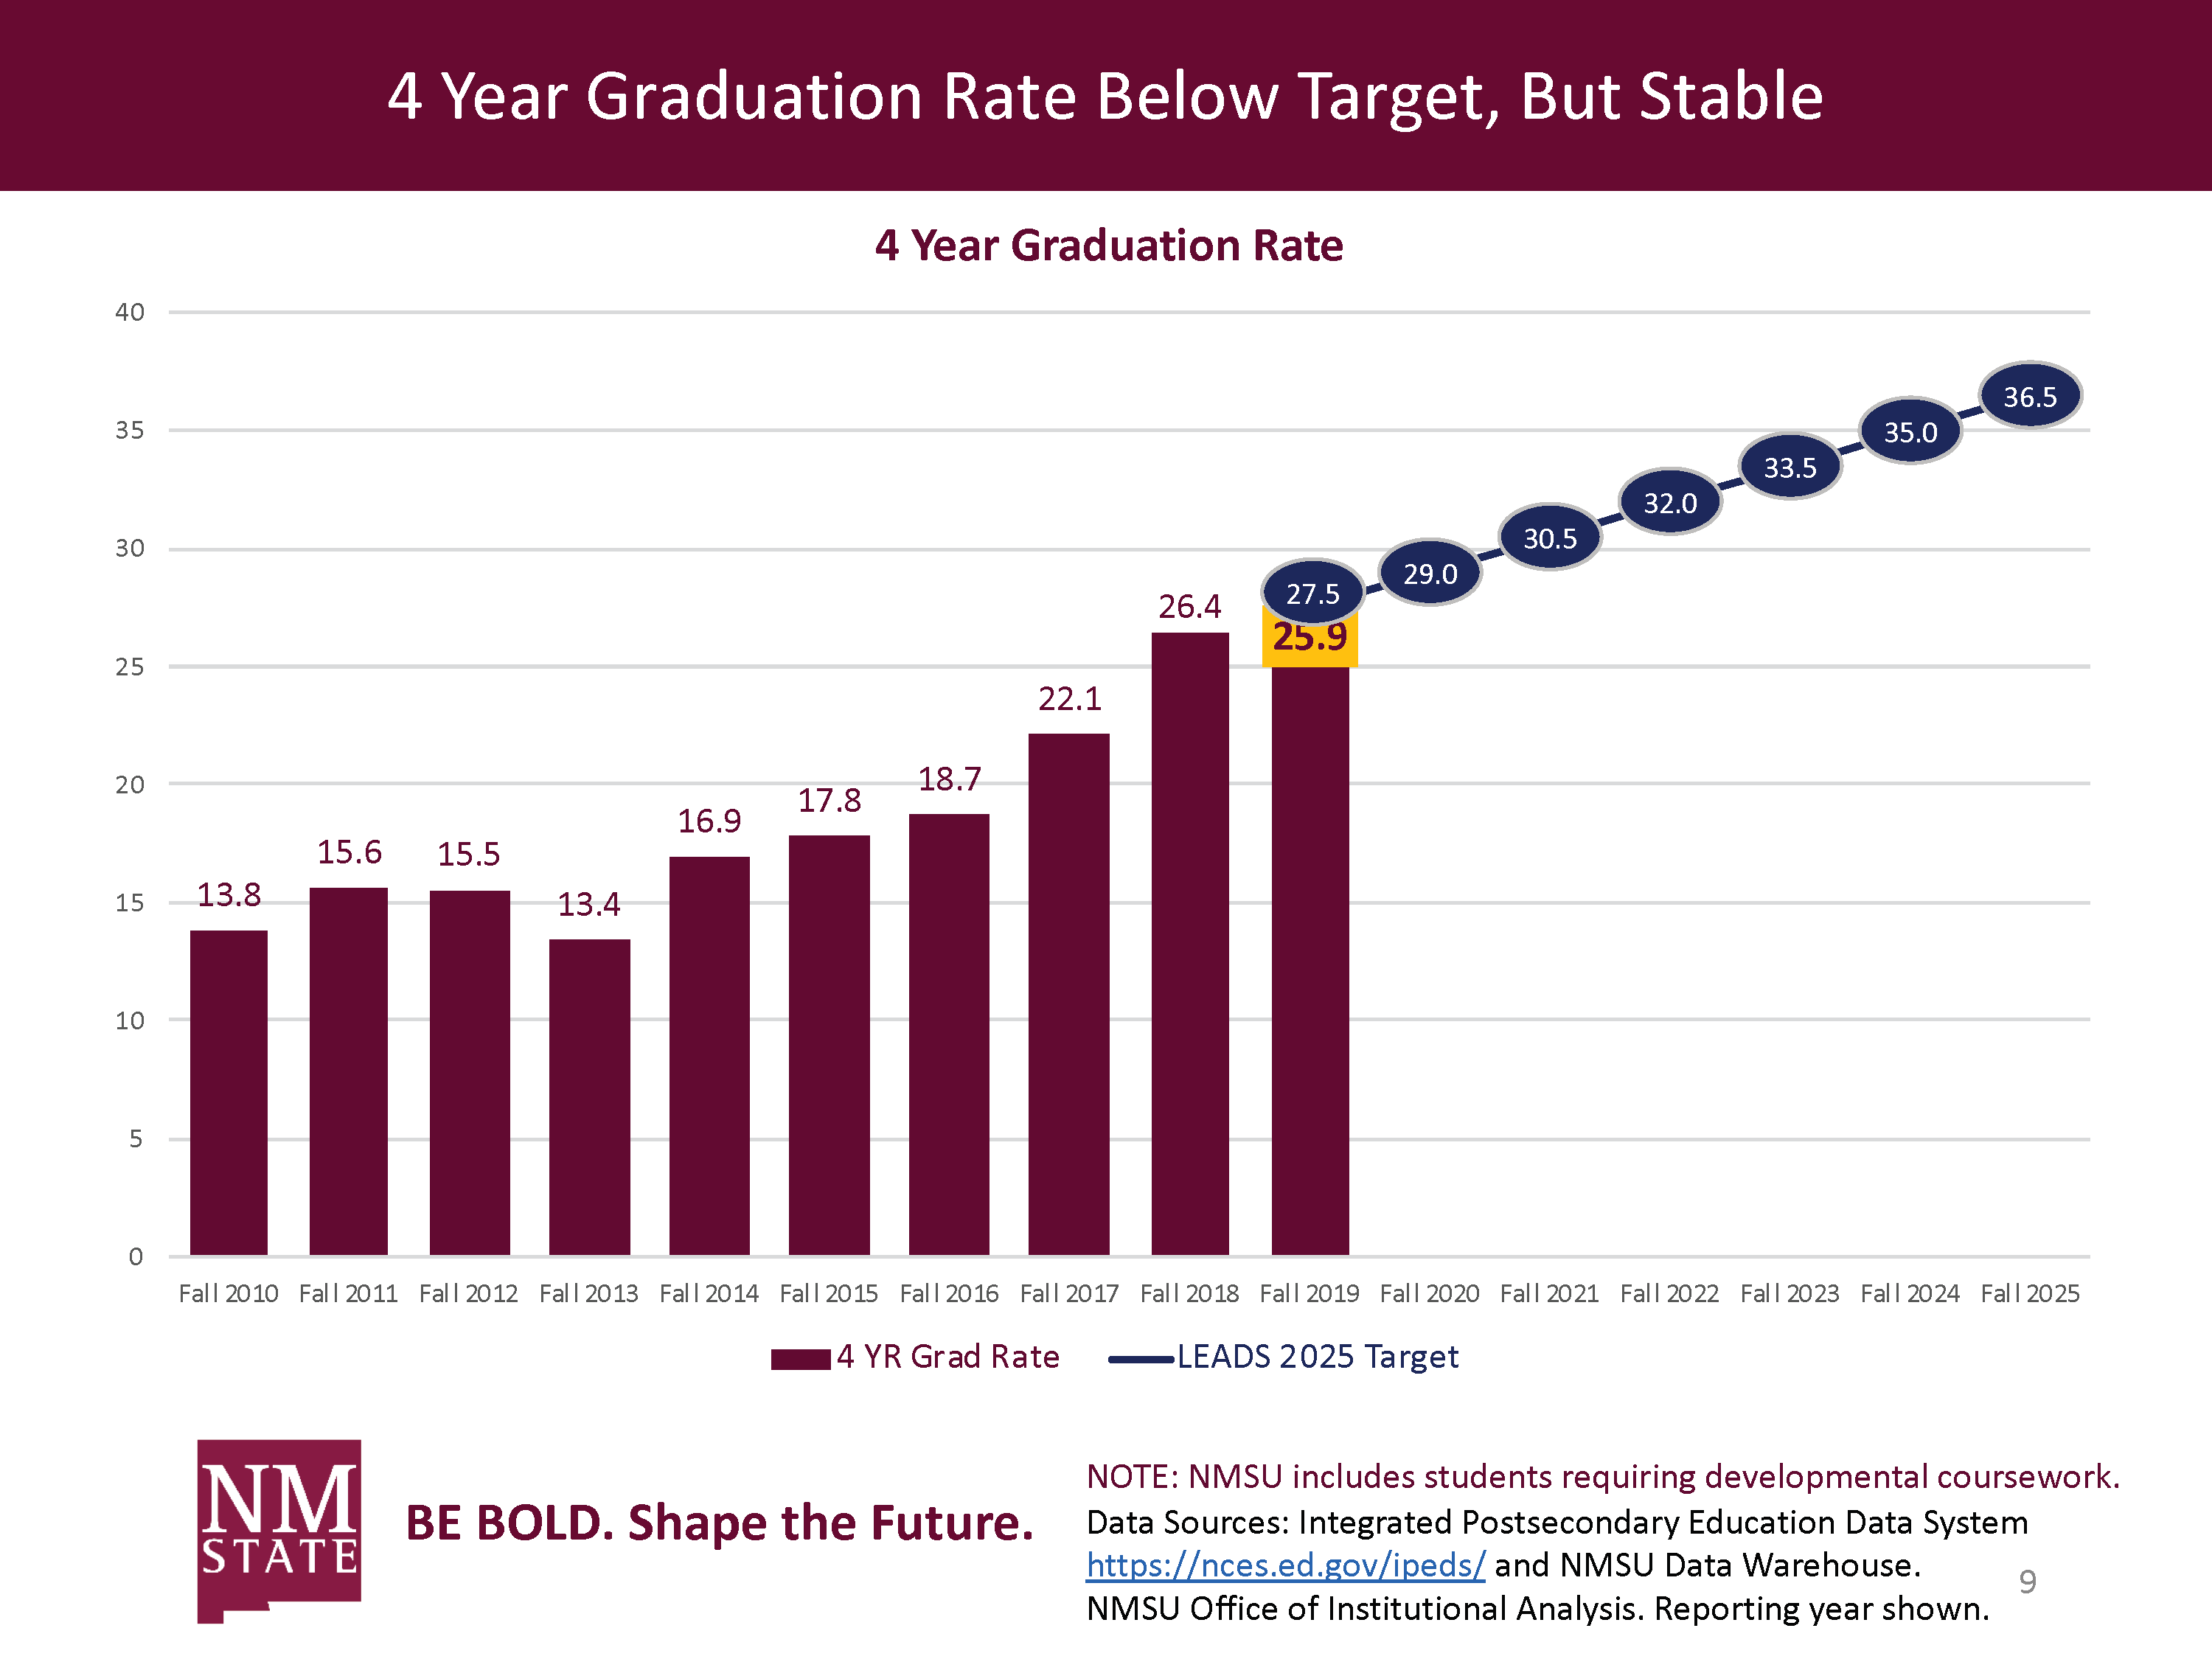 4 Year Graduate Rate Below Target, But Stable